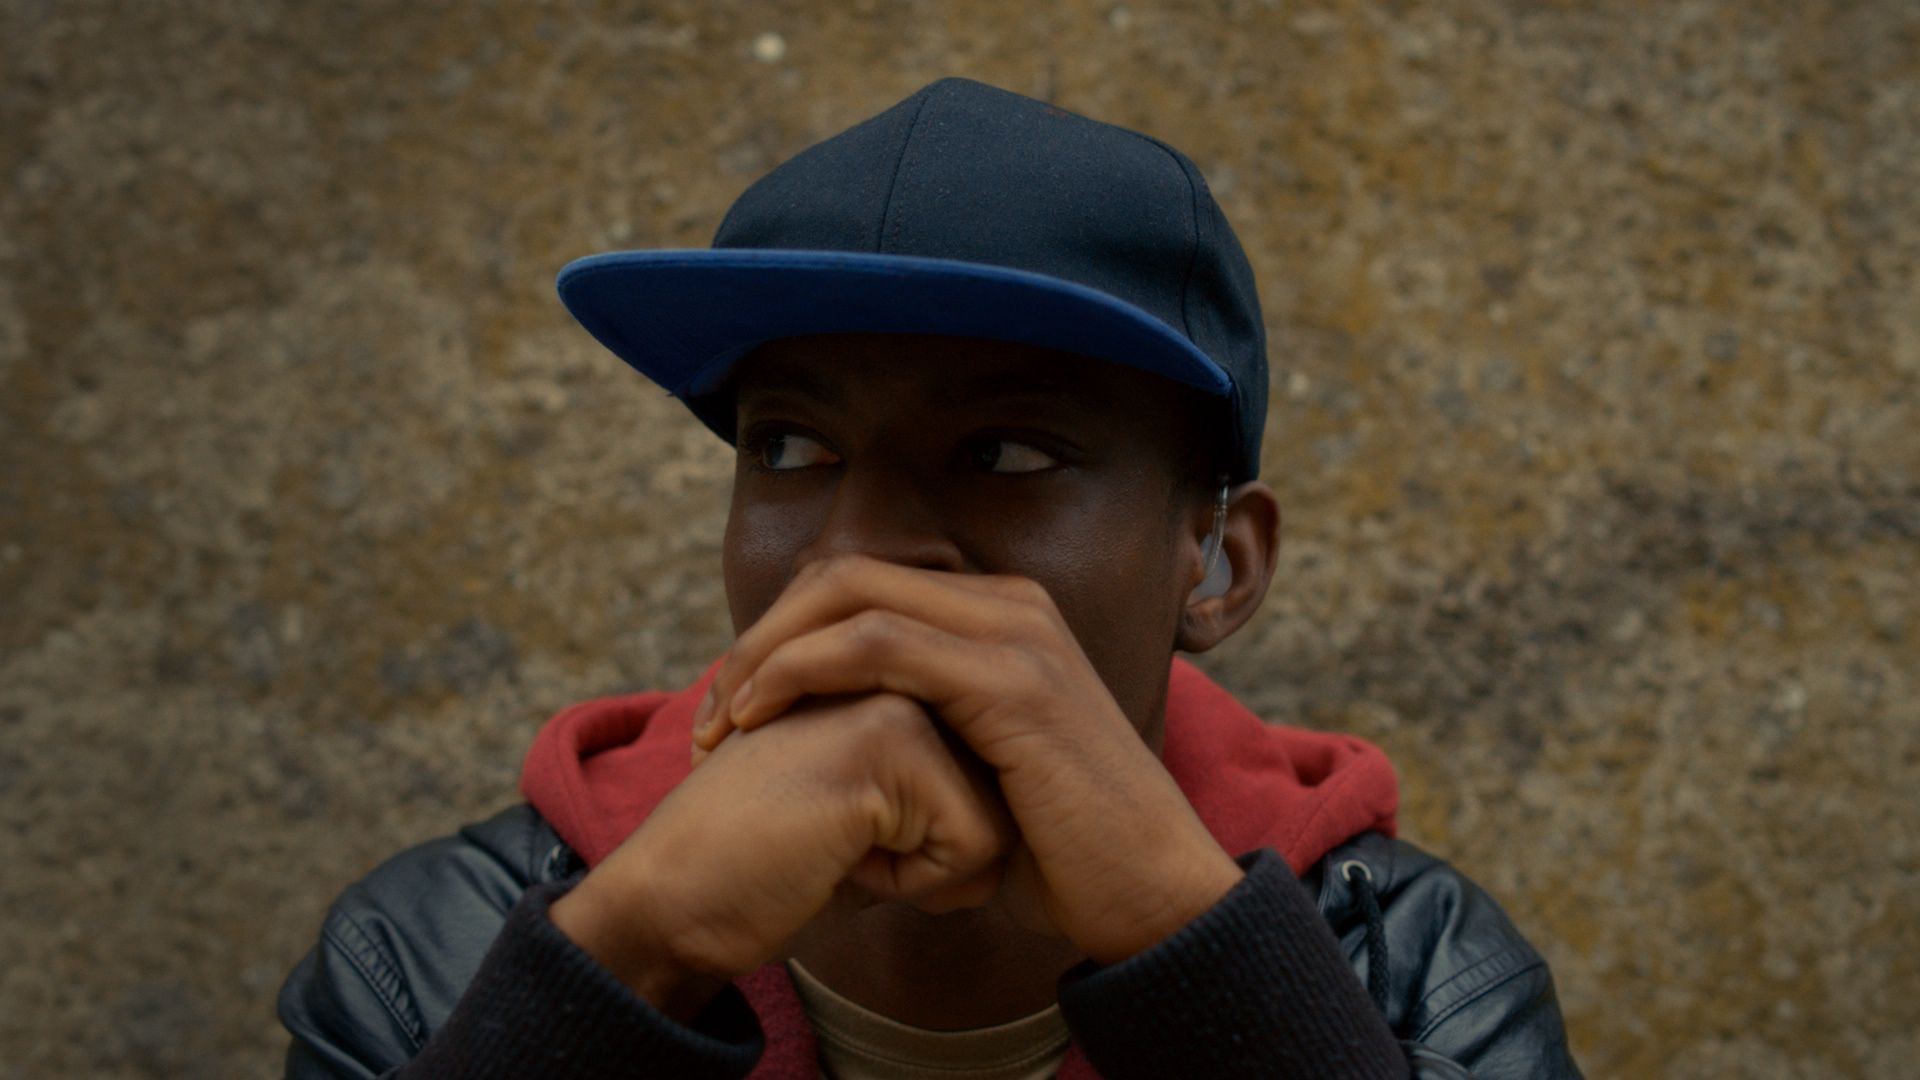 Isaac, a young black man wears a baseball hat and thinks with his hands folded together near his mouth. His hearing aid can be seen.